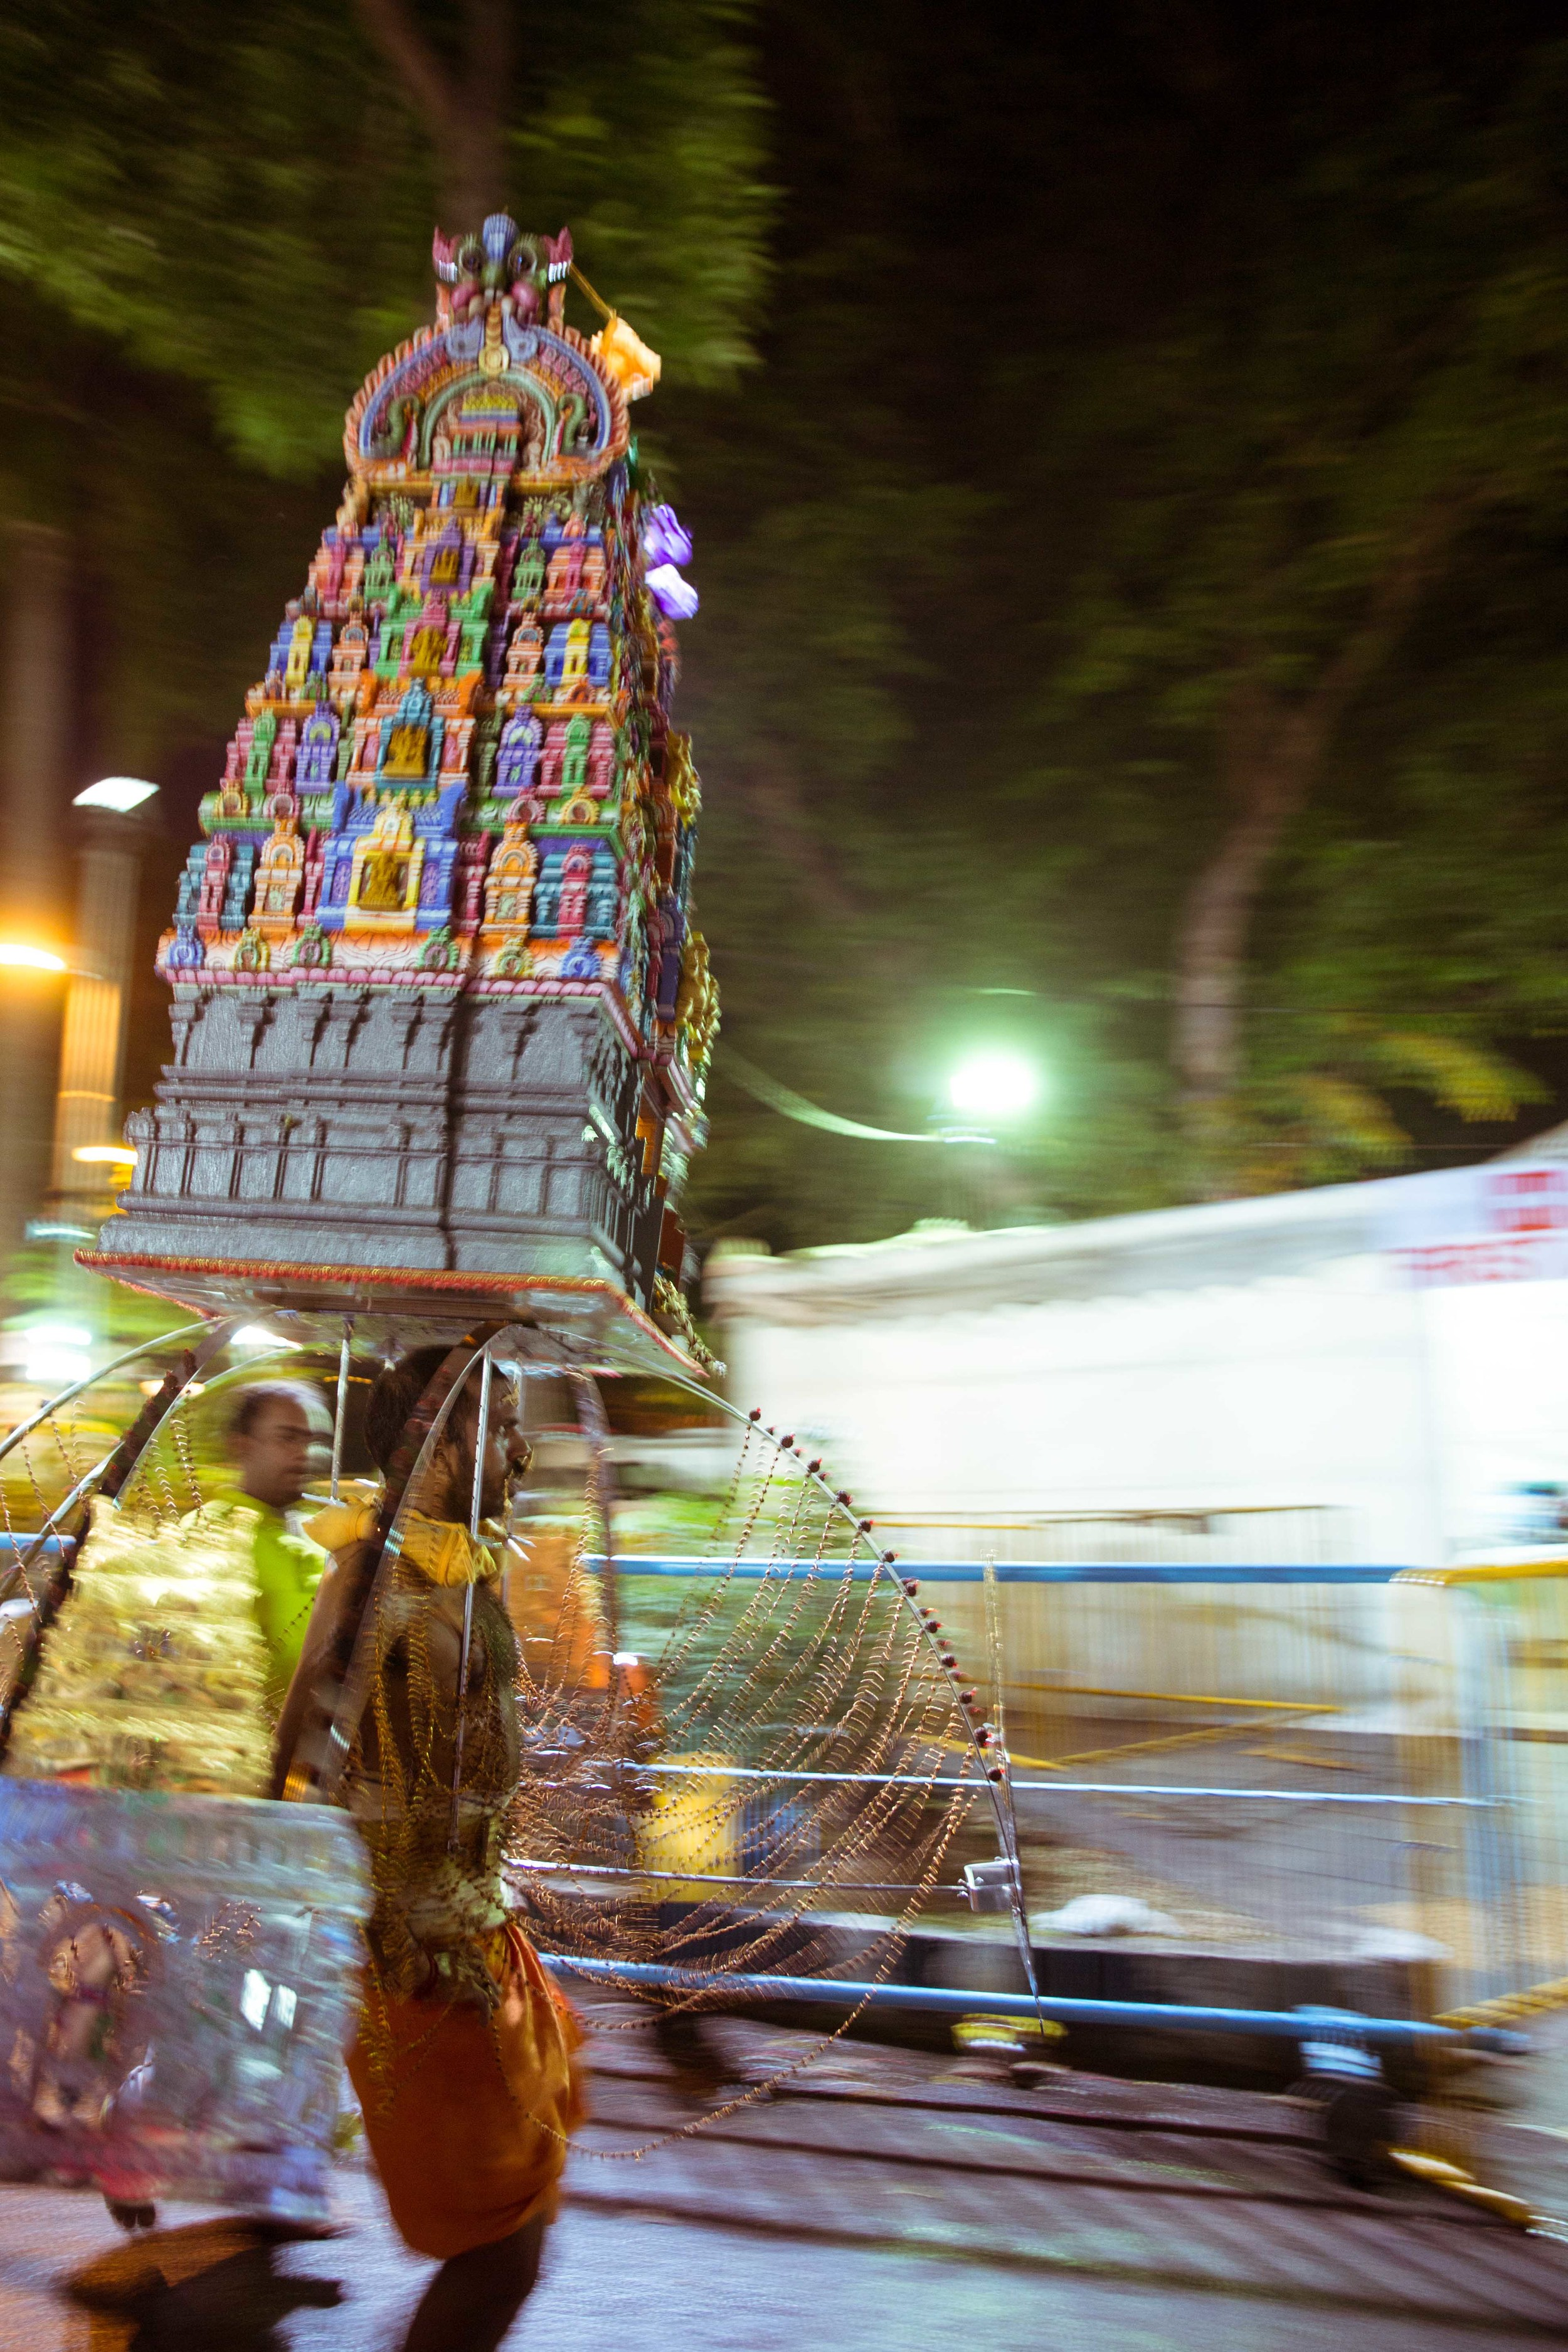 A devotee walking towards the Kavadi dismantling area.